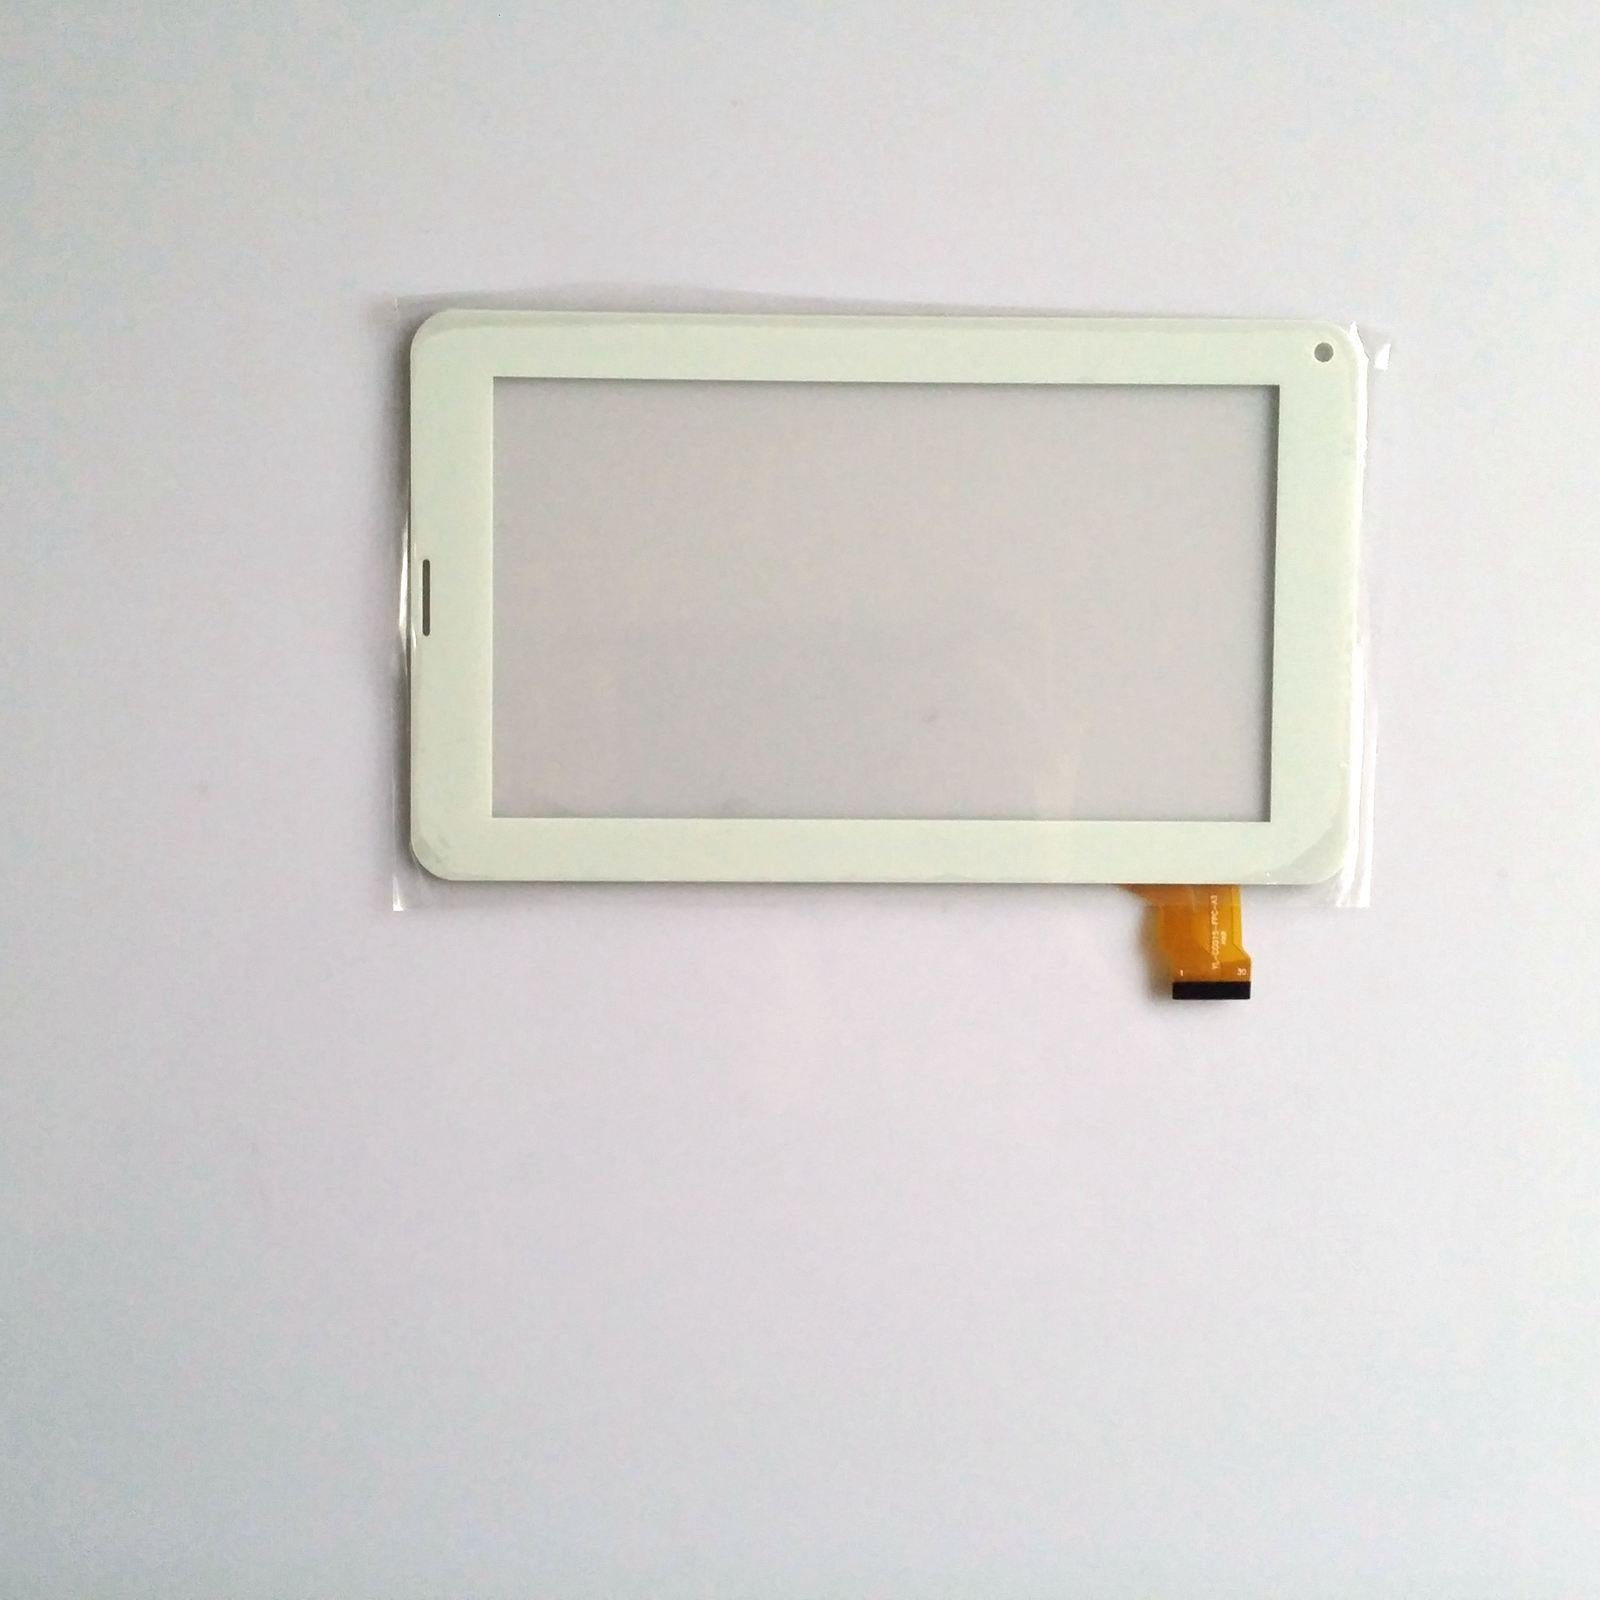 EUTOPING New 7 inch YL-CG015-FPC-A3 touch screen panel Digitizer for tablet